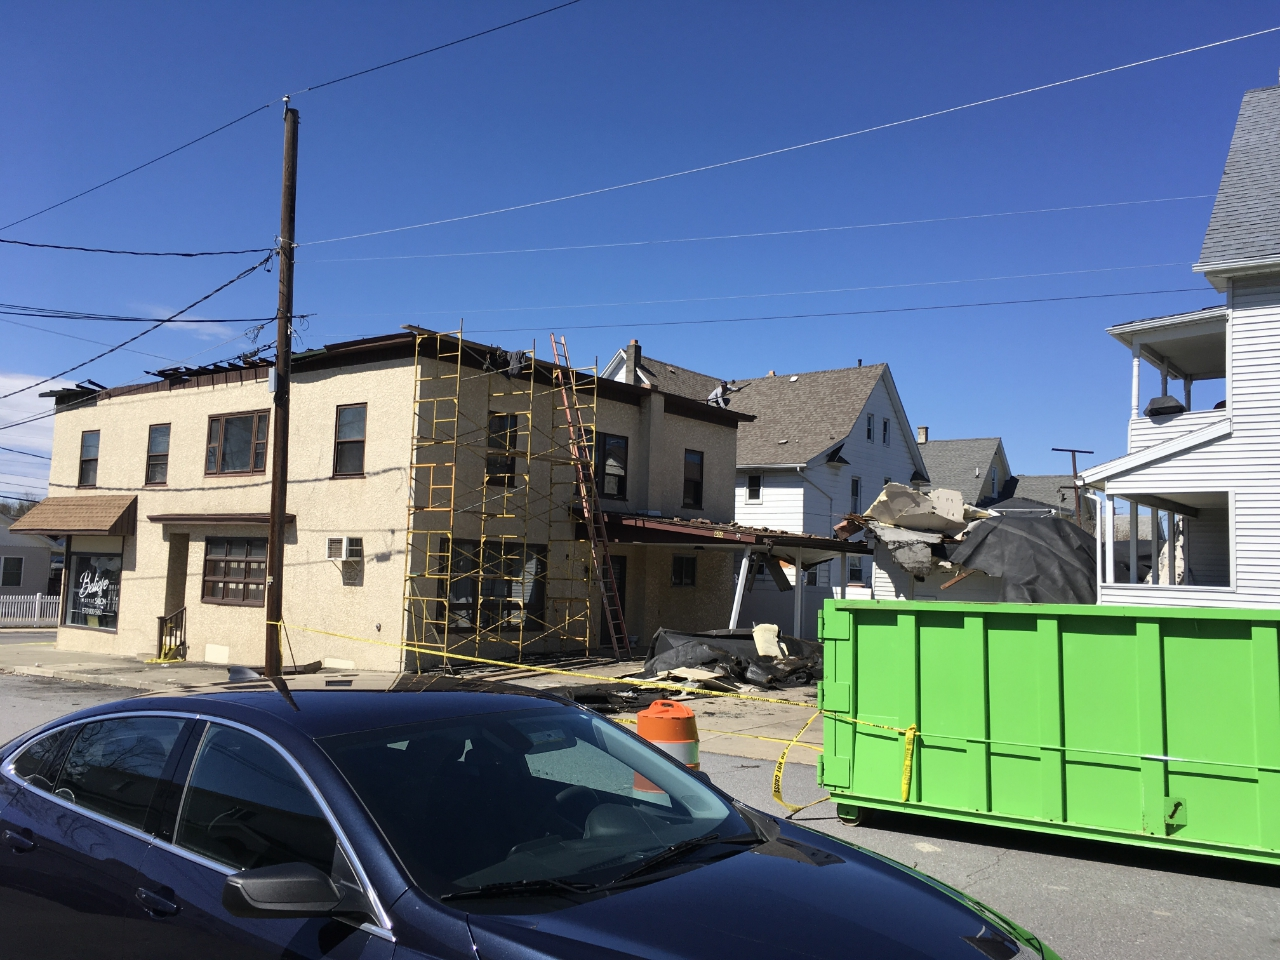 Roof damage in Scranton area. Click for a larger view.